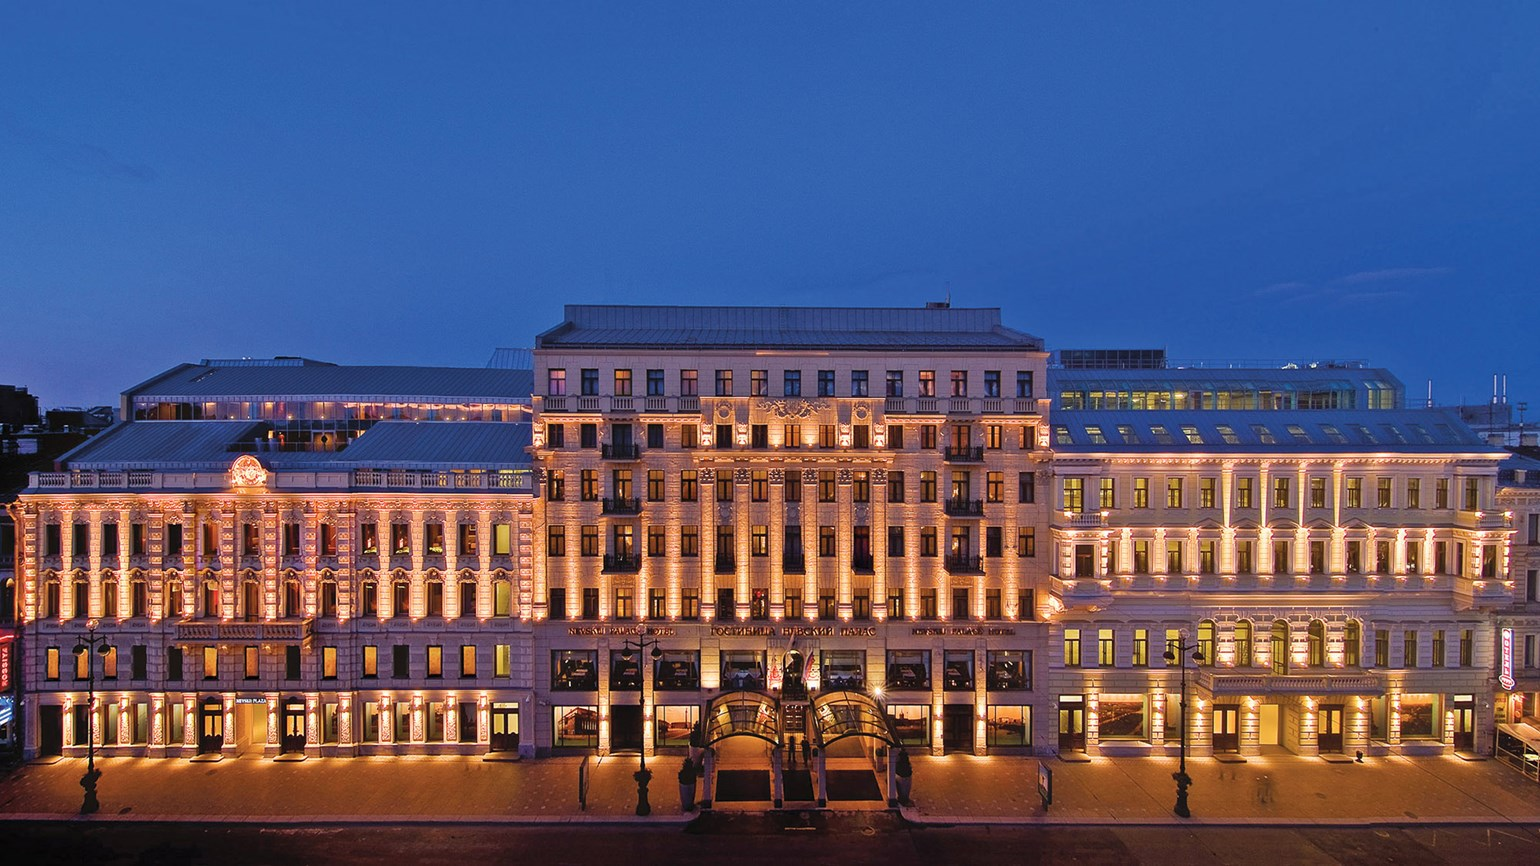 Corinthia Hotel St. Petersburg promotes 'Art a la Carte' package